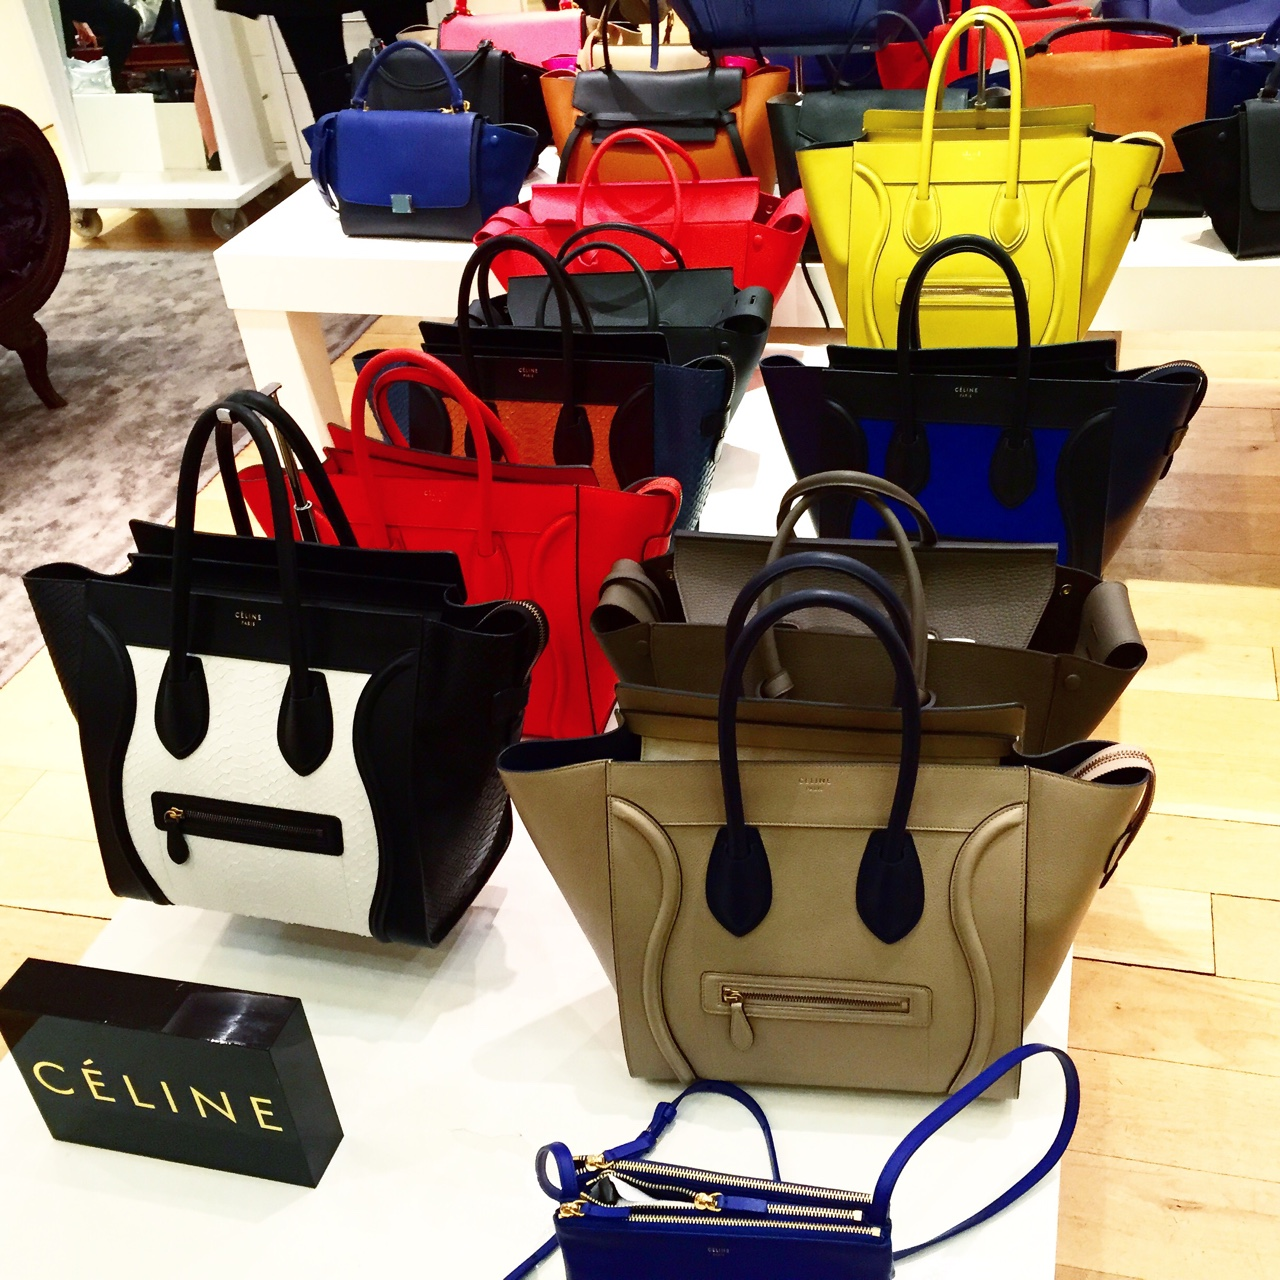 Feeling Céline Céline Bags for sale at the Cruise A/W Fashion Show on Thursday night. My favourite styles were the khaki Tie Tote Bag, the black Mini Belt Tote Bag & the Classic Red Bag. //SHE